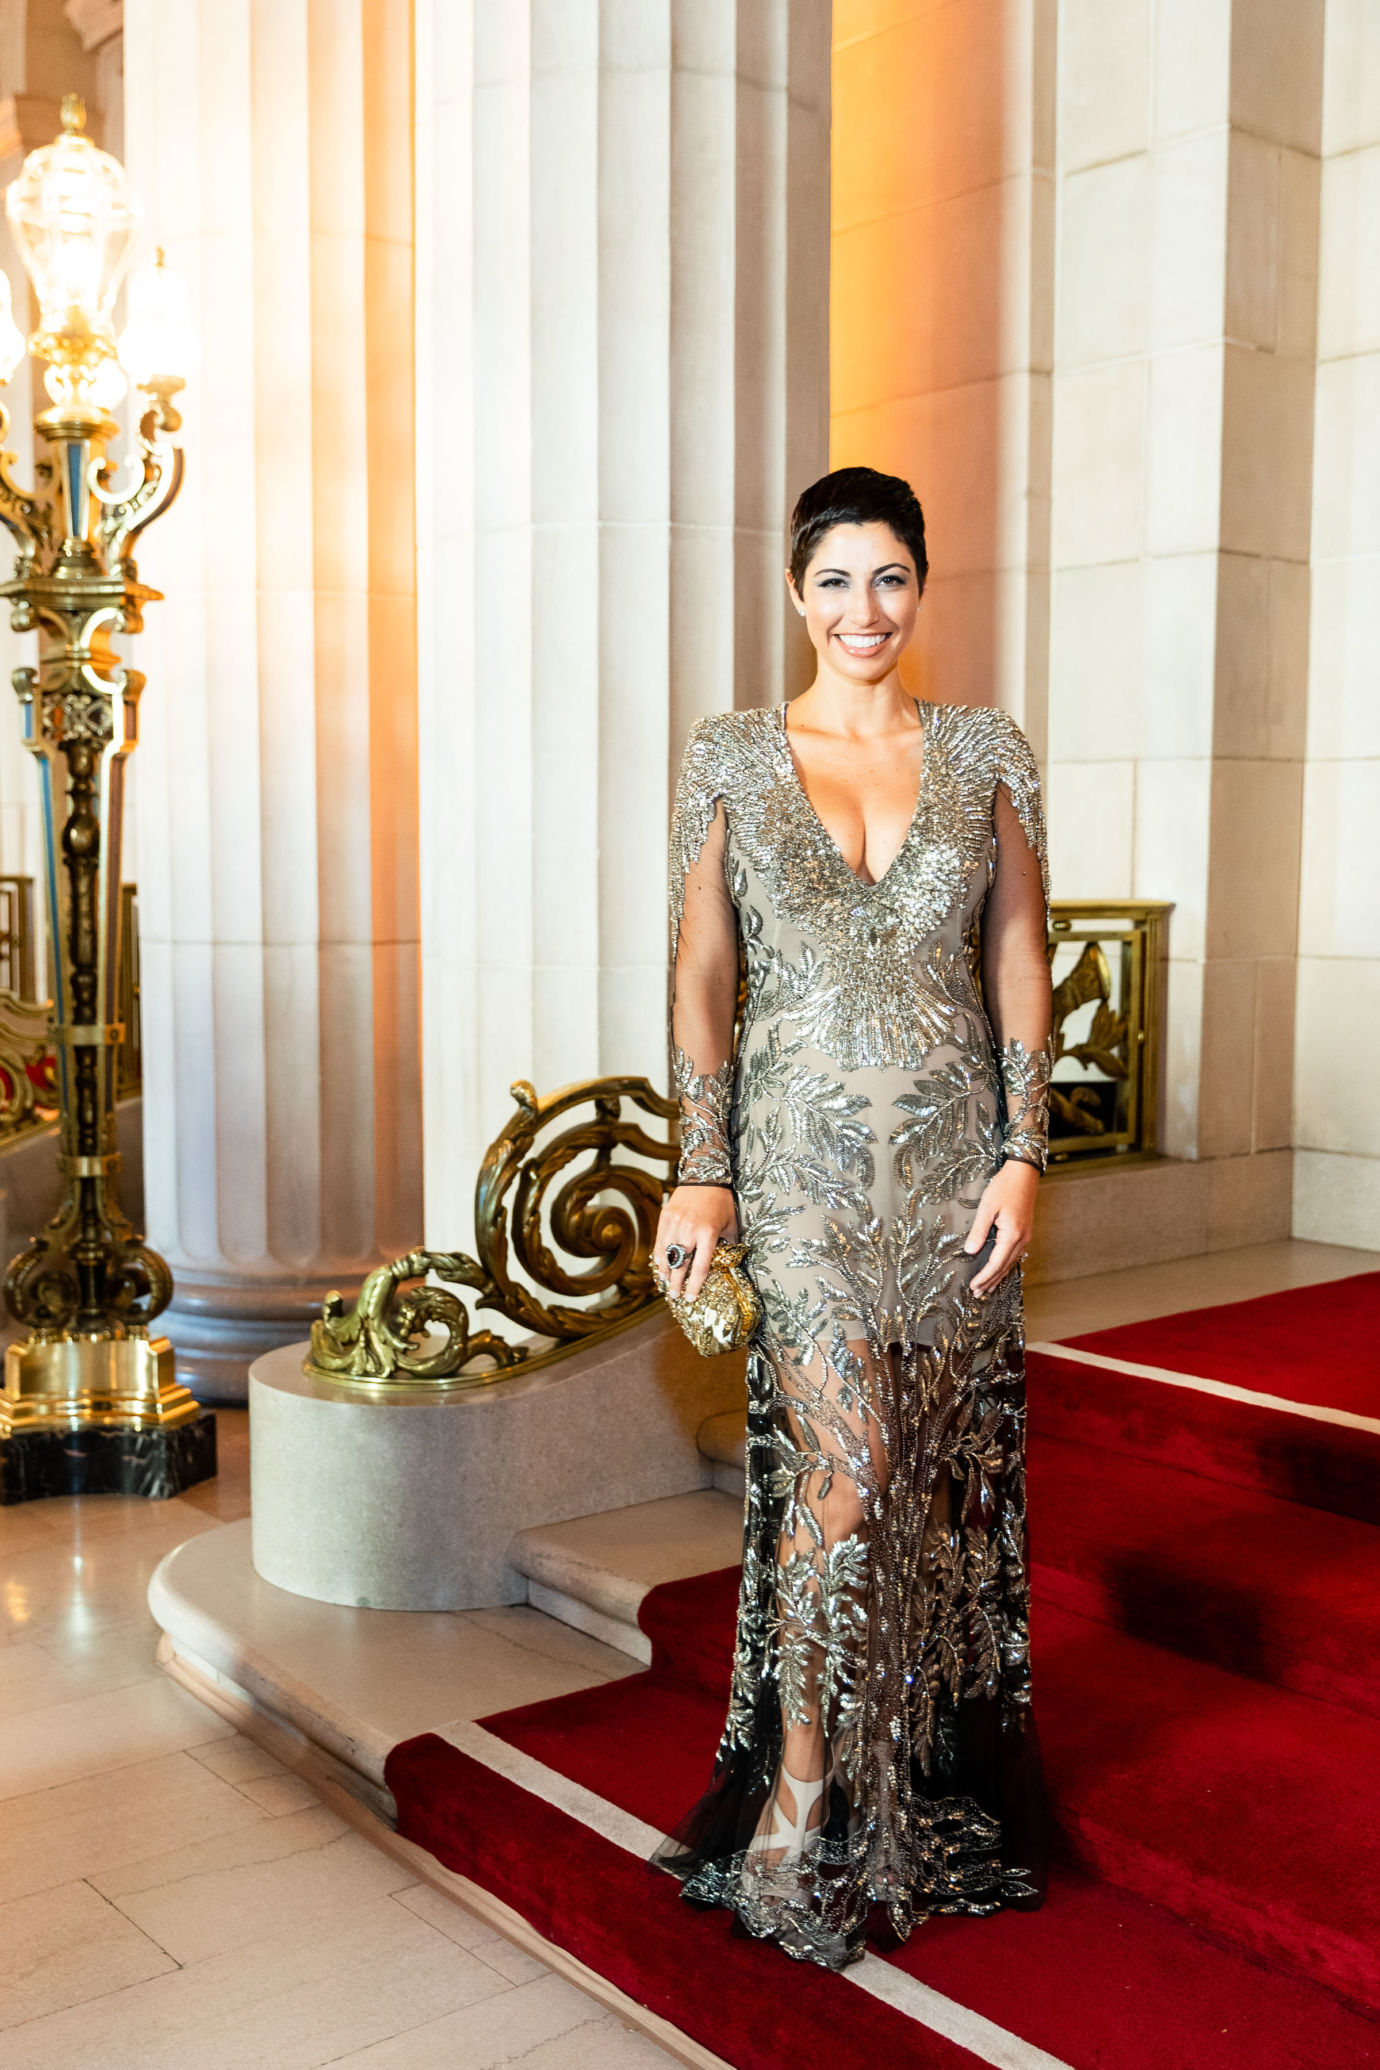 Chrisa Pappas goes to the Opera wearing a champagne gold sequin Alexander McQueen dress completed with an Alexander McQueen clutch to match.